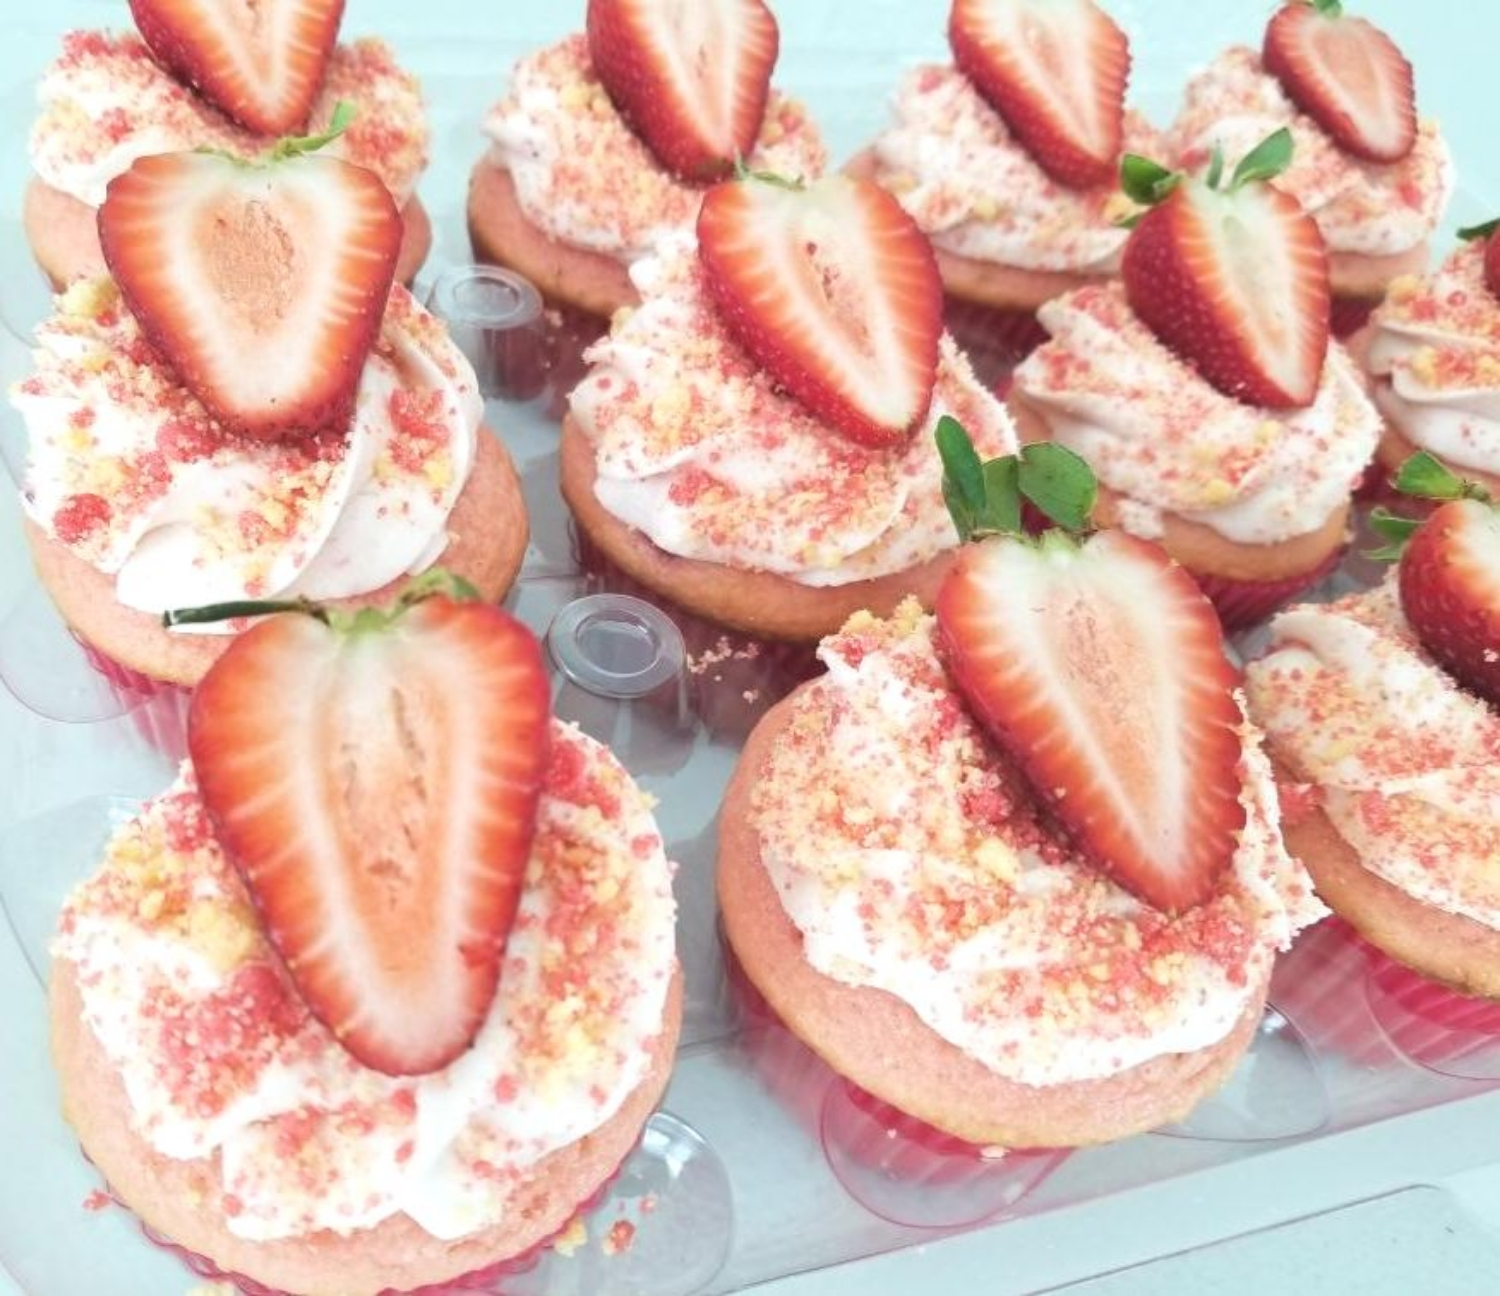 Strawberry Shortcake Cupcakes topped with Strawberries